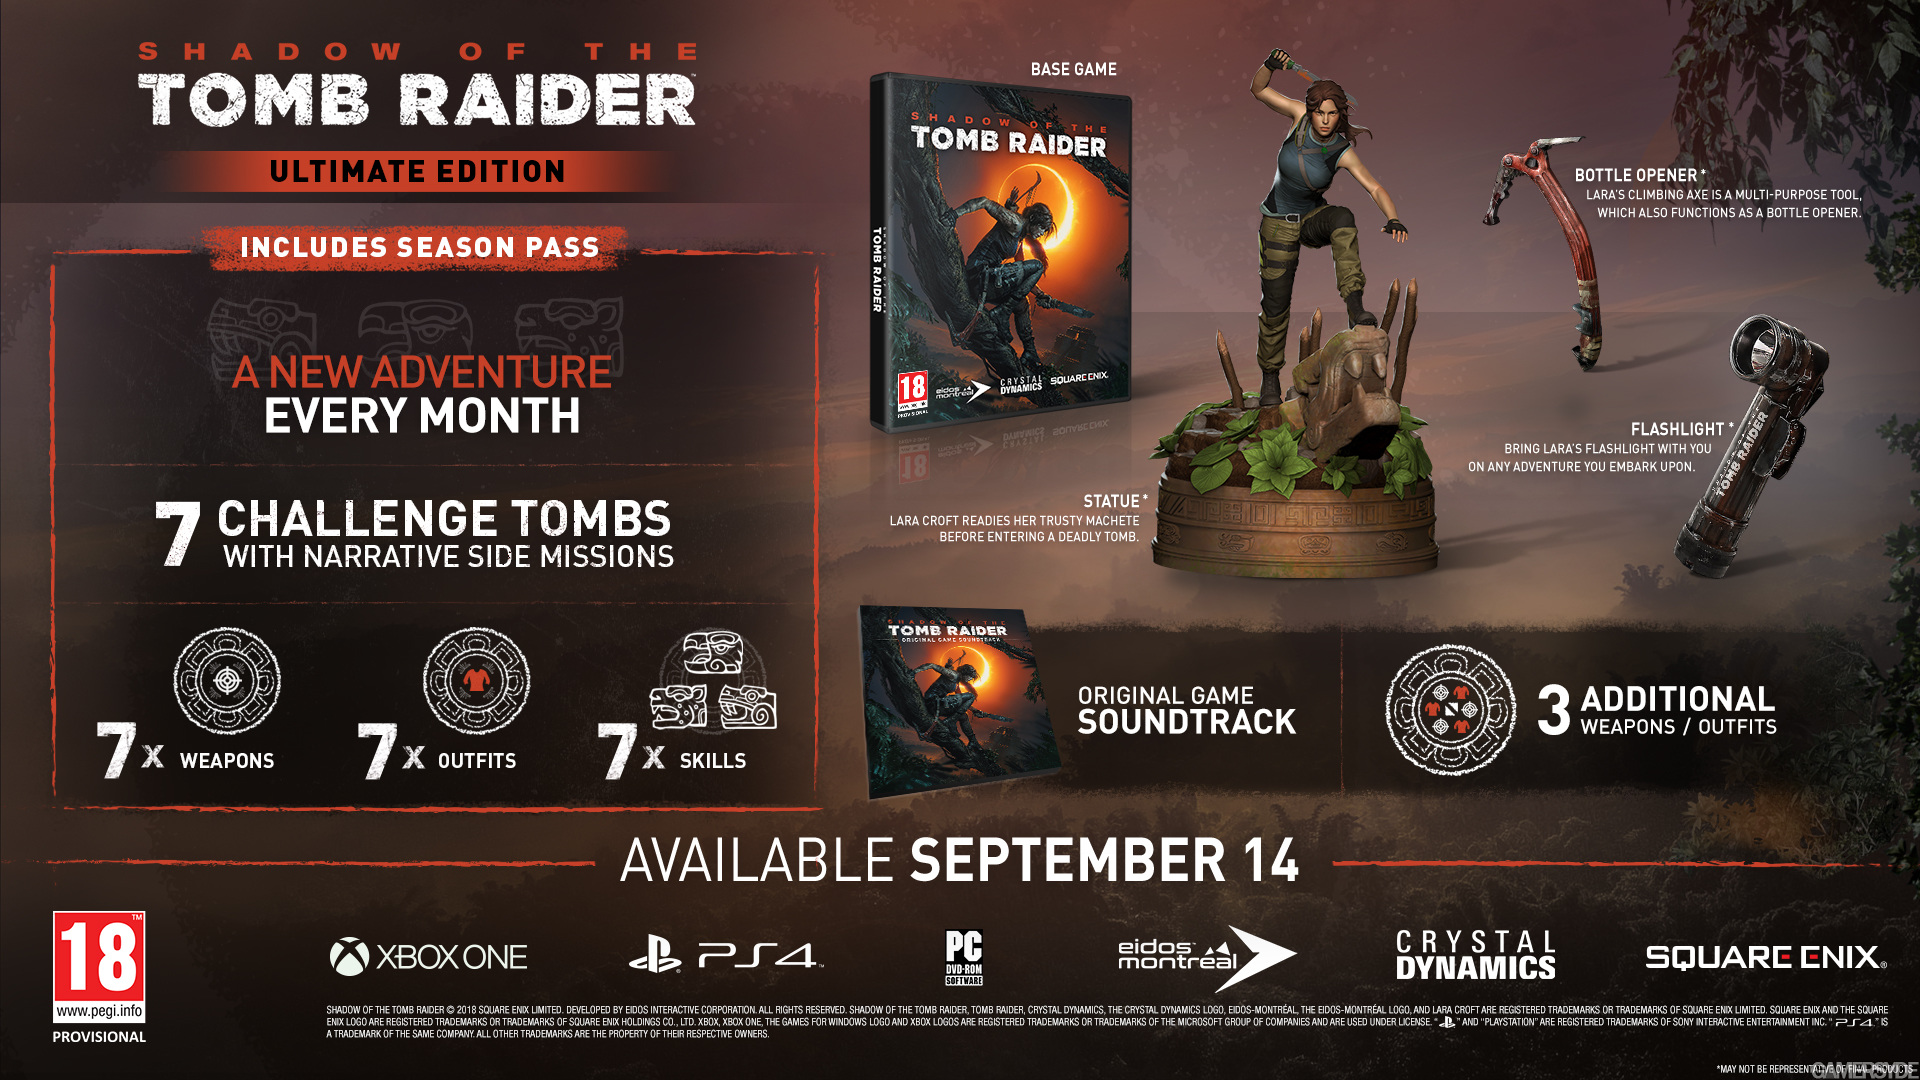 image_shadow_of_the_tomb_raider-38093-40